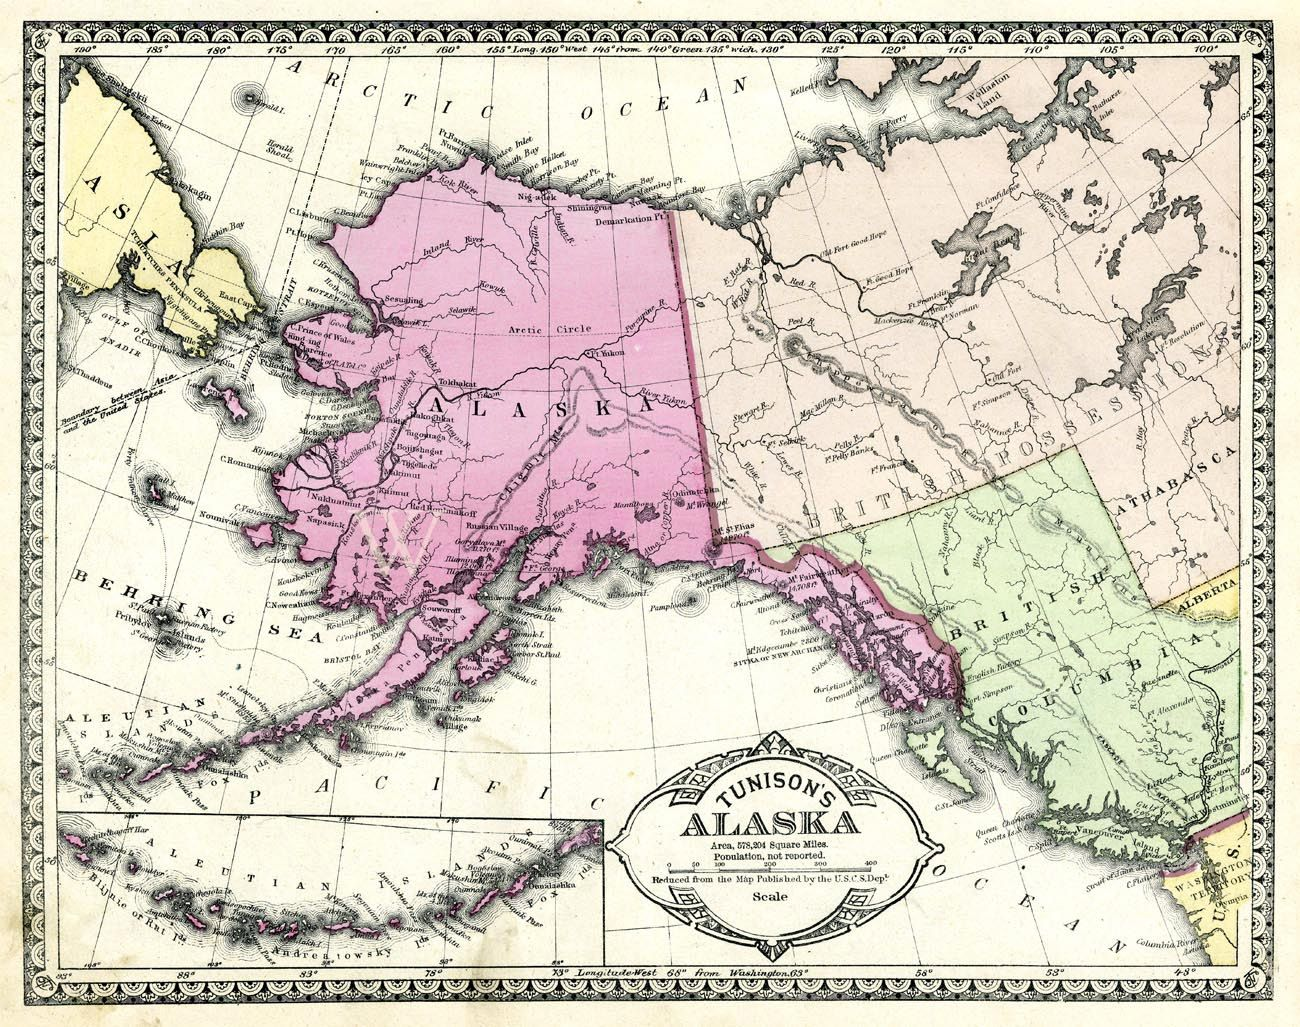 Co color art printing alaska - Antique Map Alaska From The 1890s In Pastels Large Map Printable Digital Download For Wall Art Tunison Hand Colored Steel Engraved